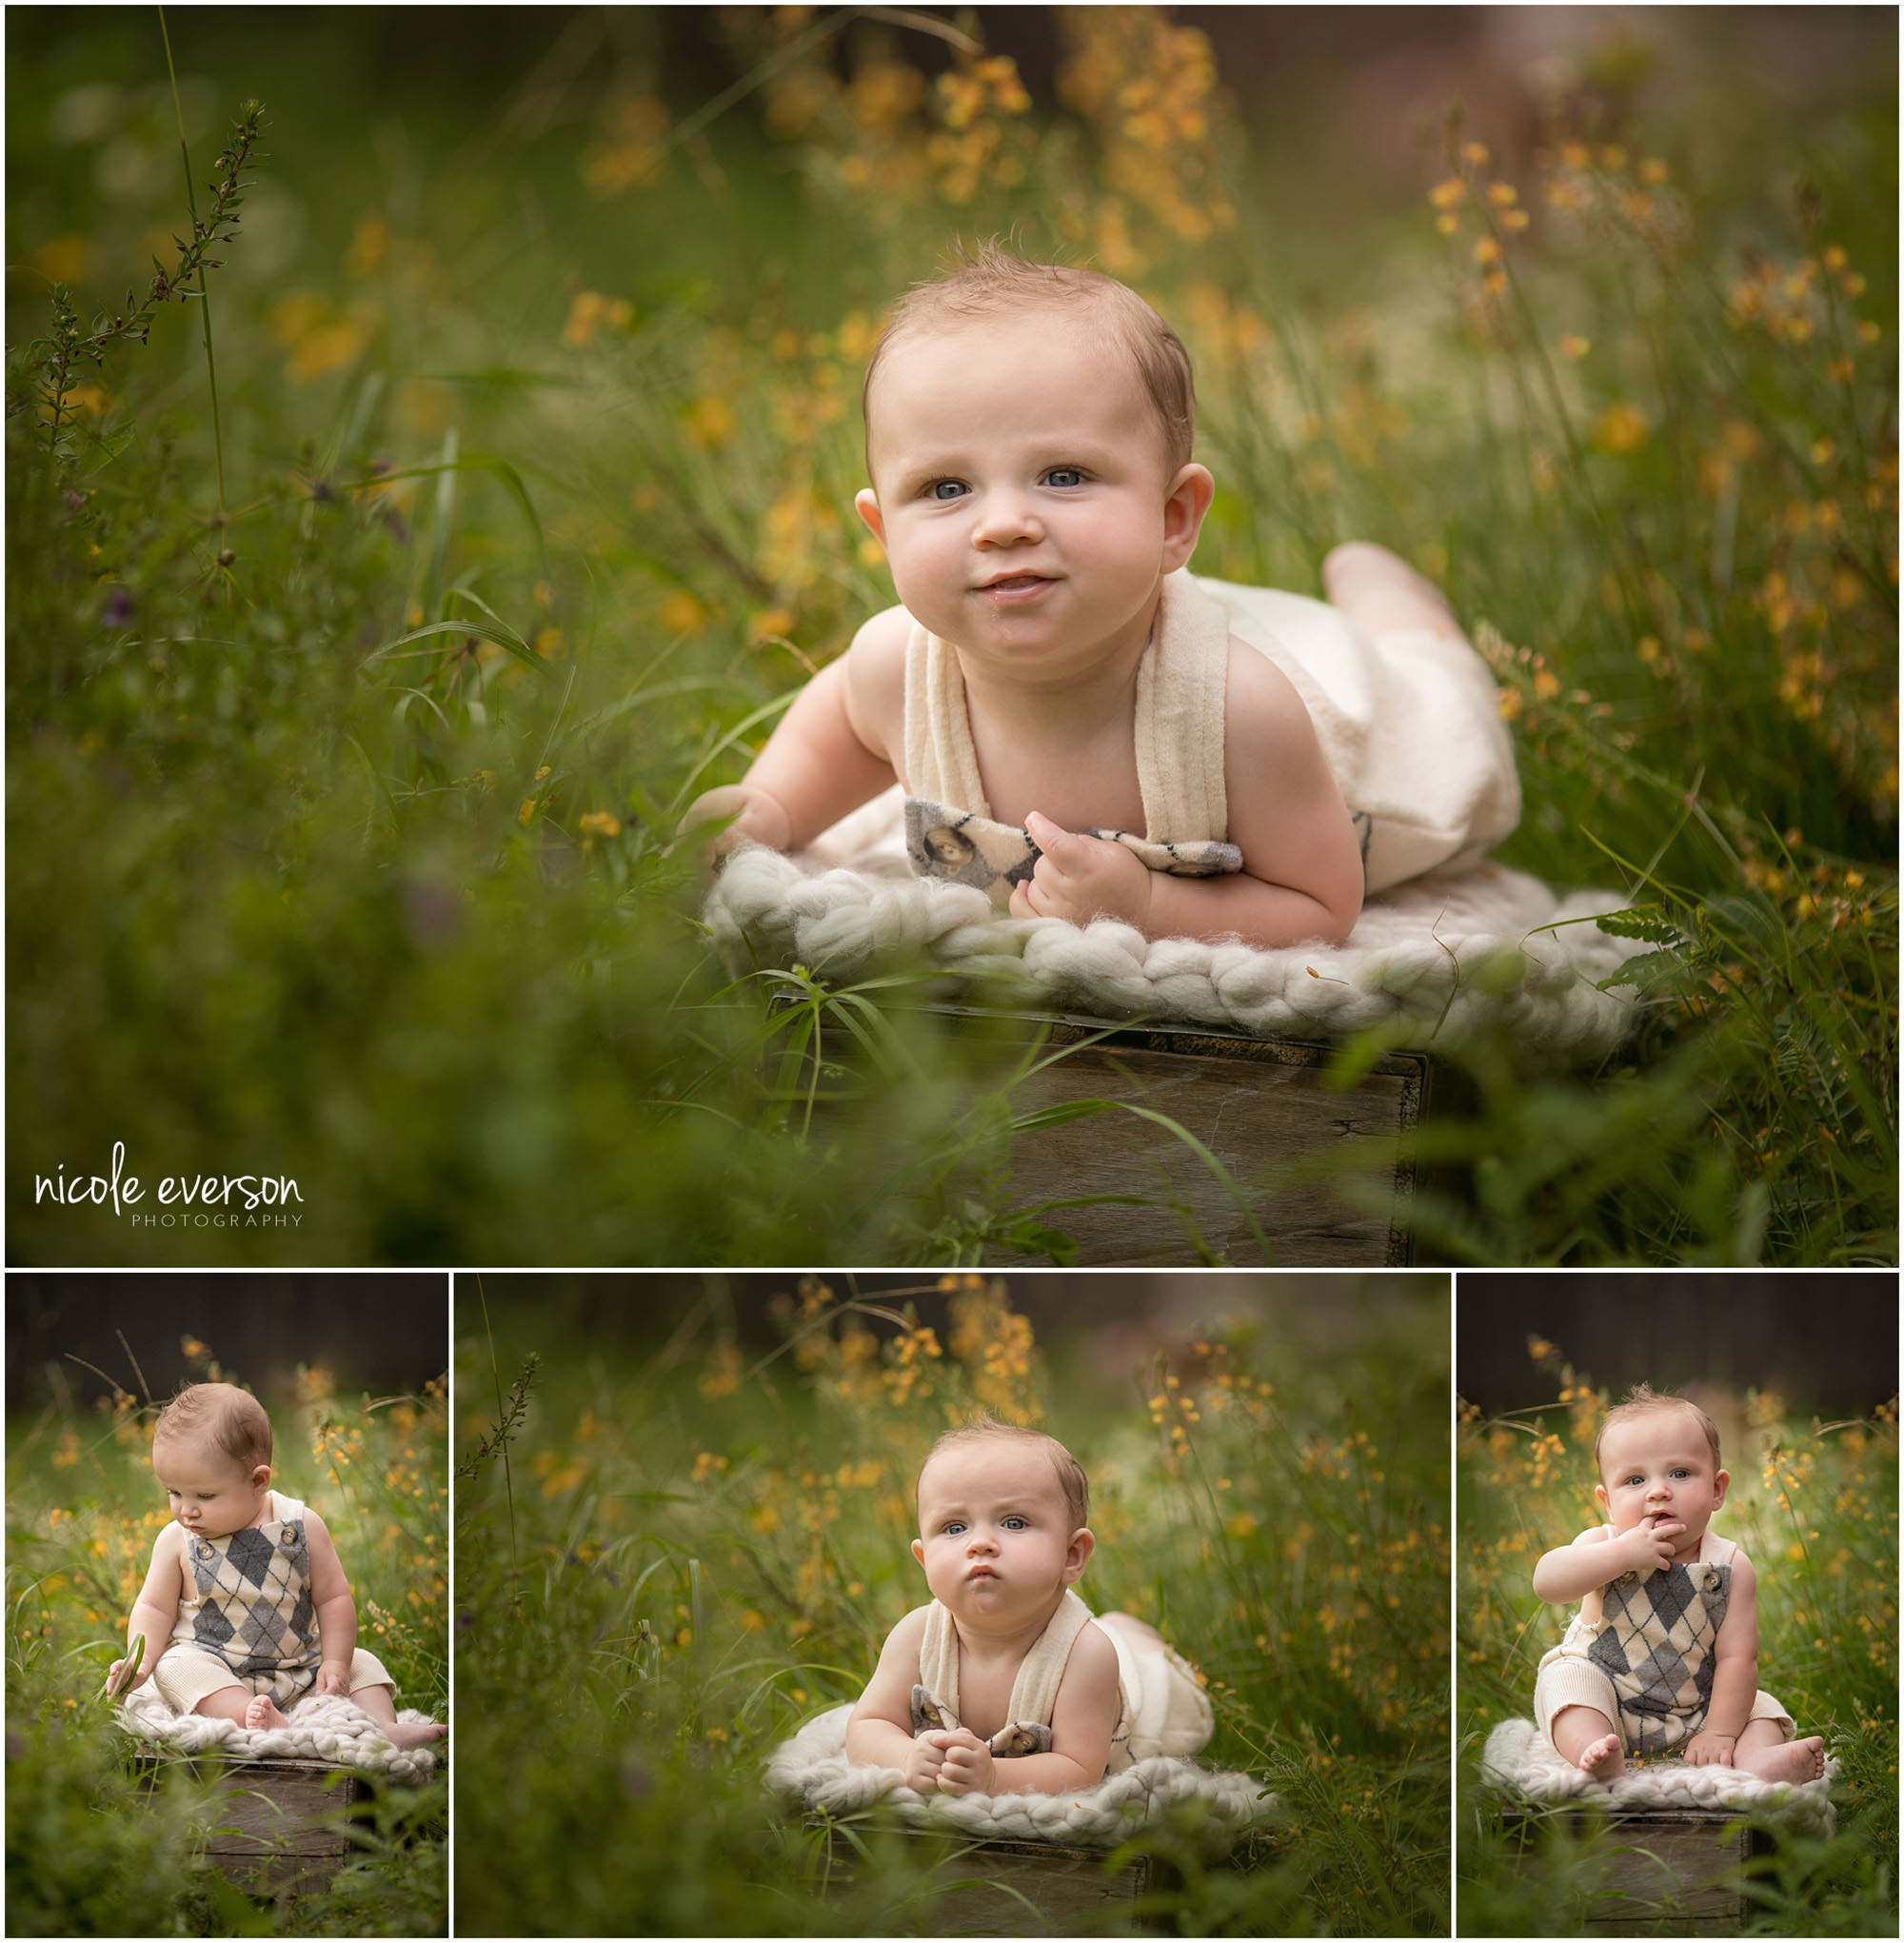 6 month old baby picture photographed in Destin Florida by Nicole Everson Photography